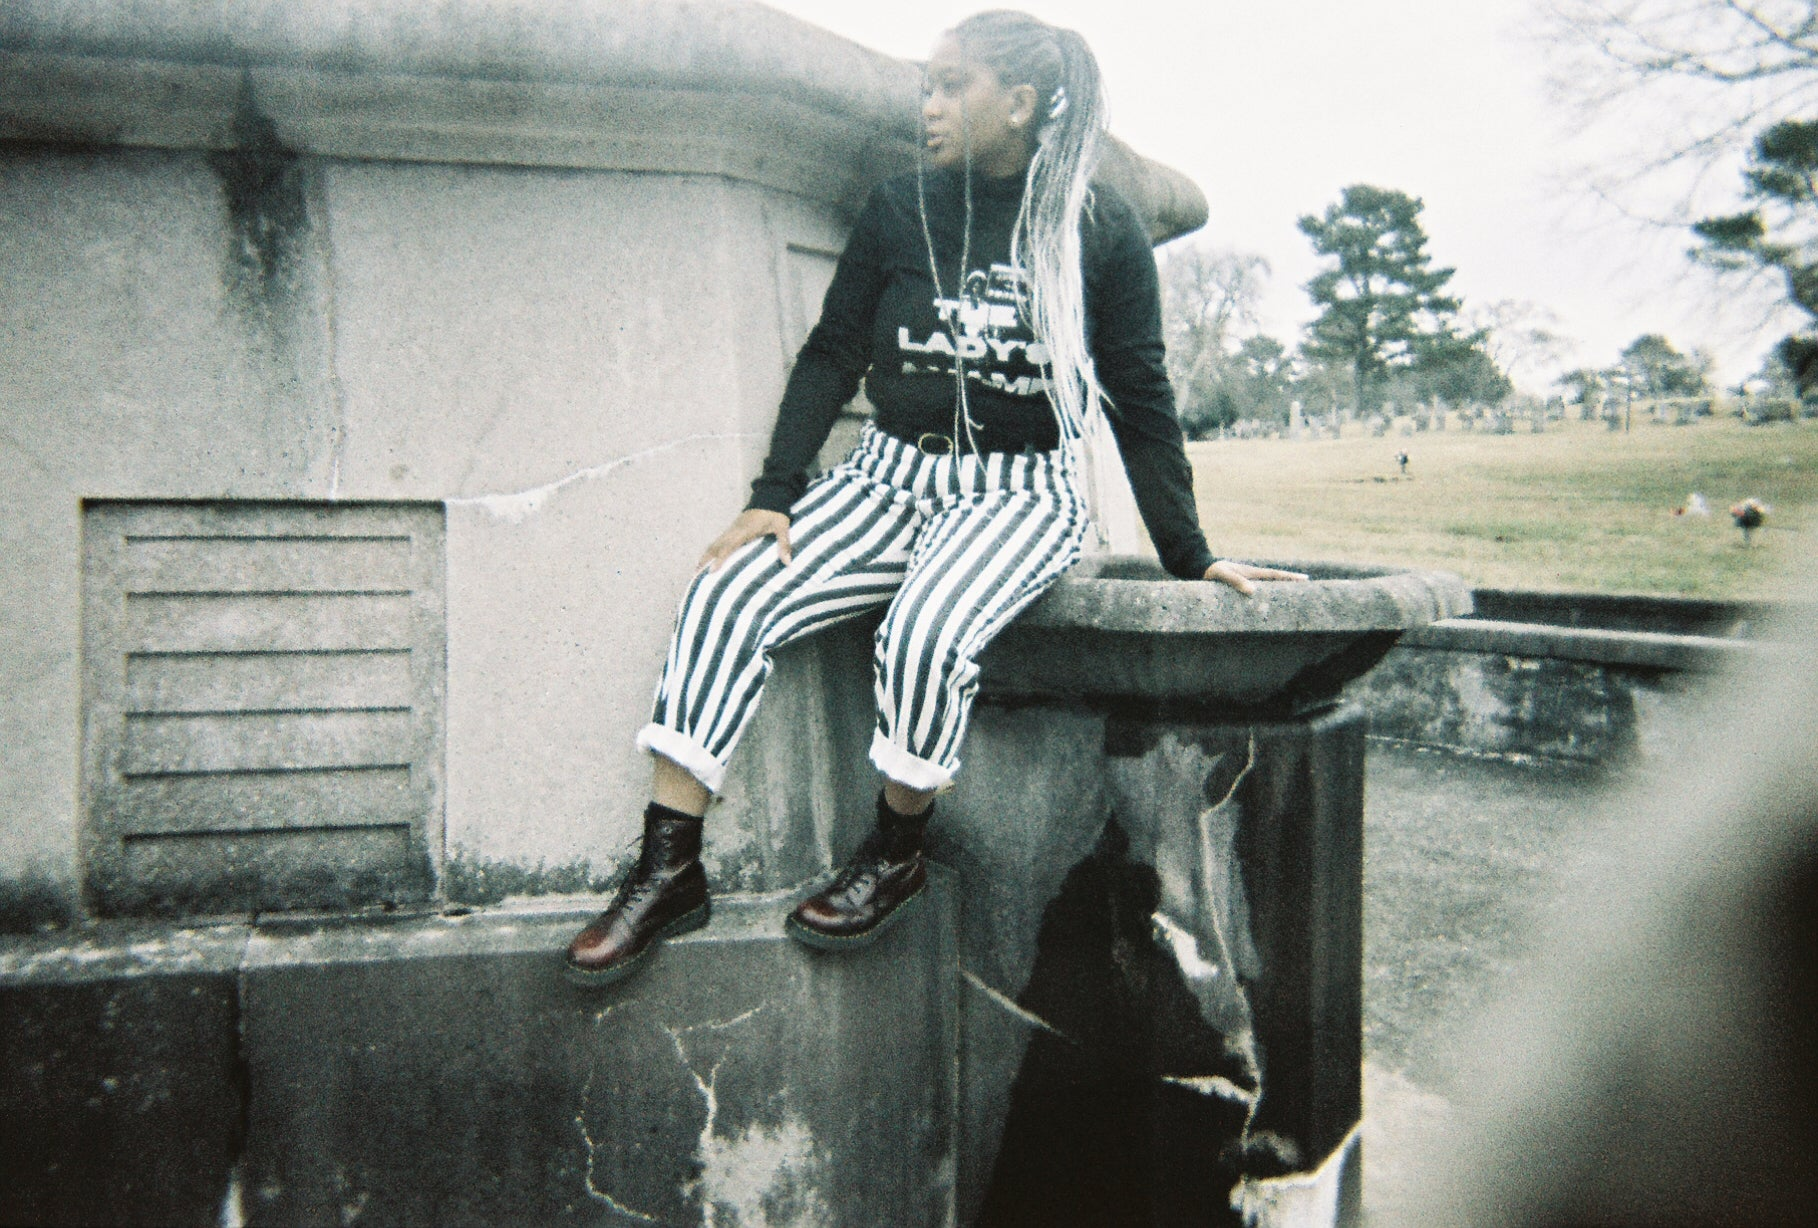 Faded image shot on film of black alternative model with long grey braids wearing the The Lady's a Vamp tee and black and white striped pants in a graveyard.